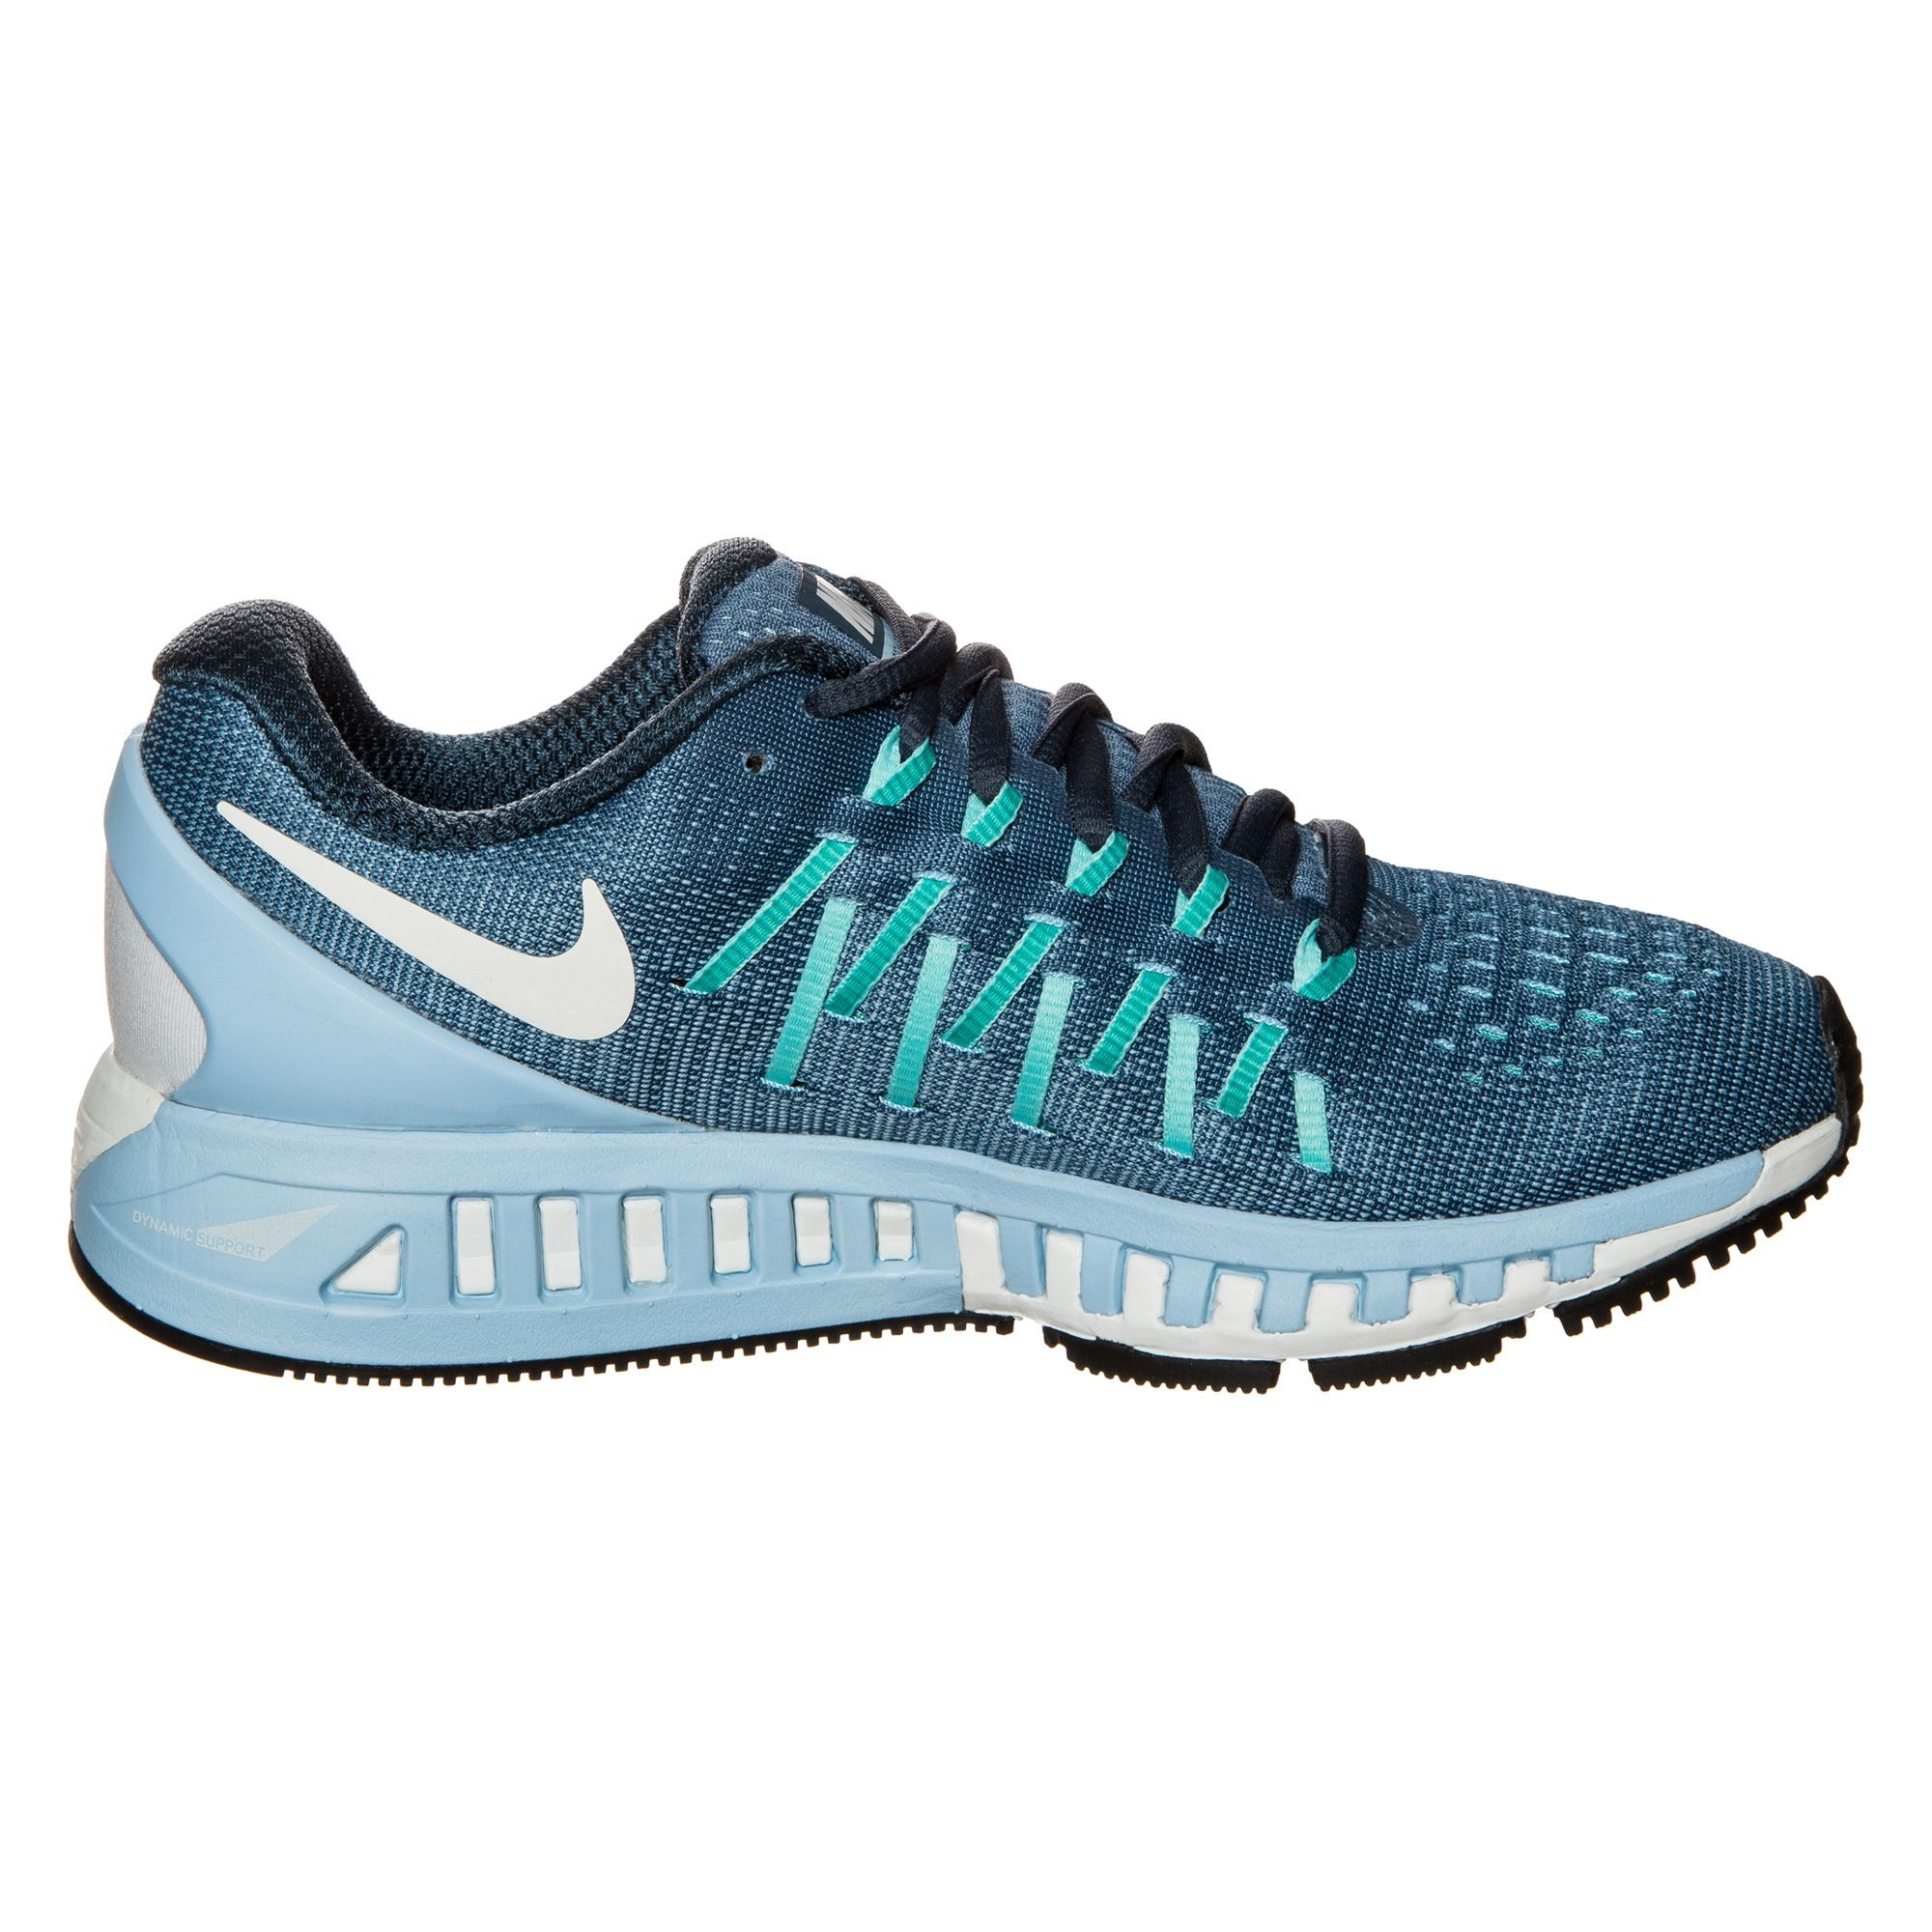 Nike Lady Air Zoom Odyssey 2 in Blau